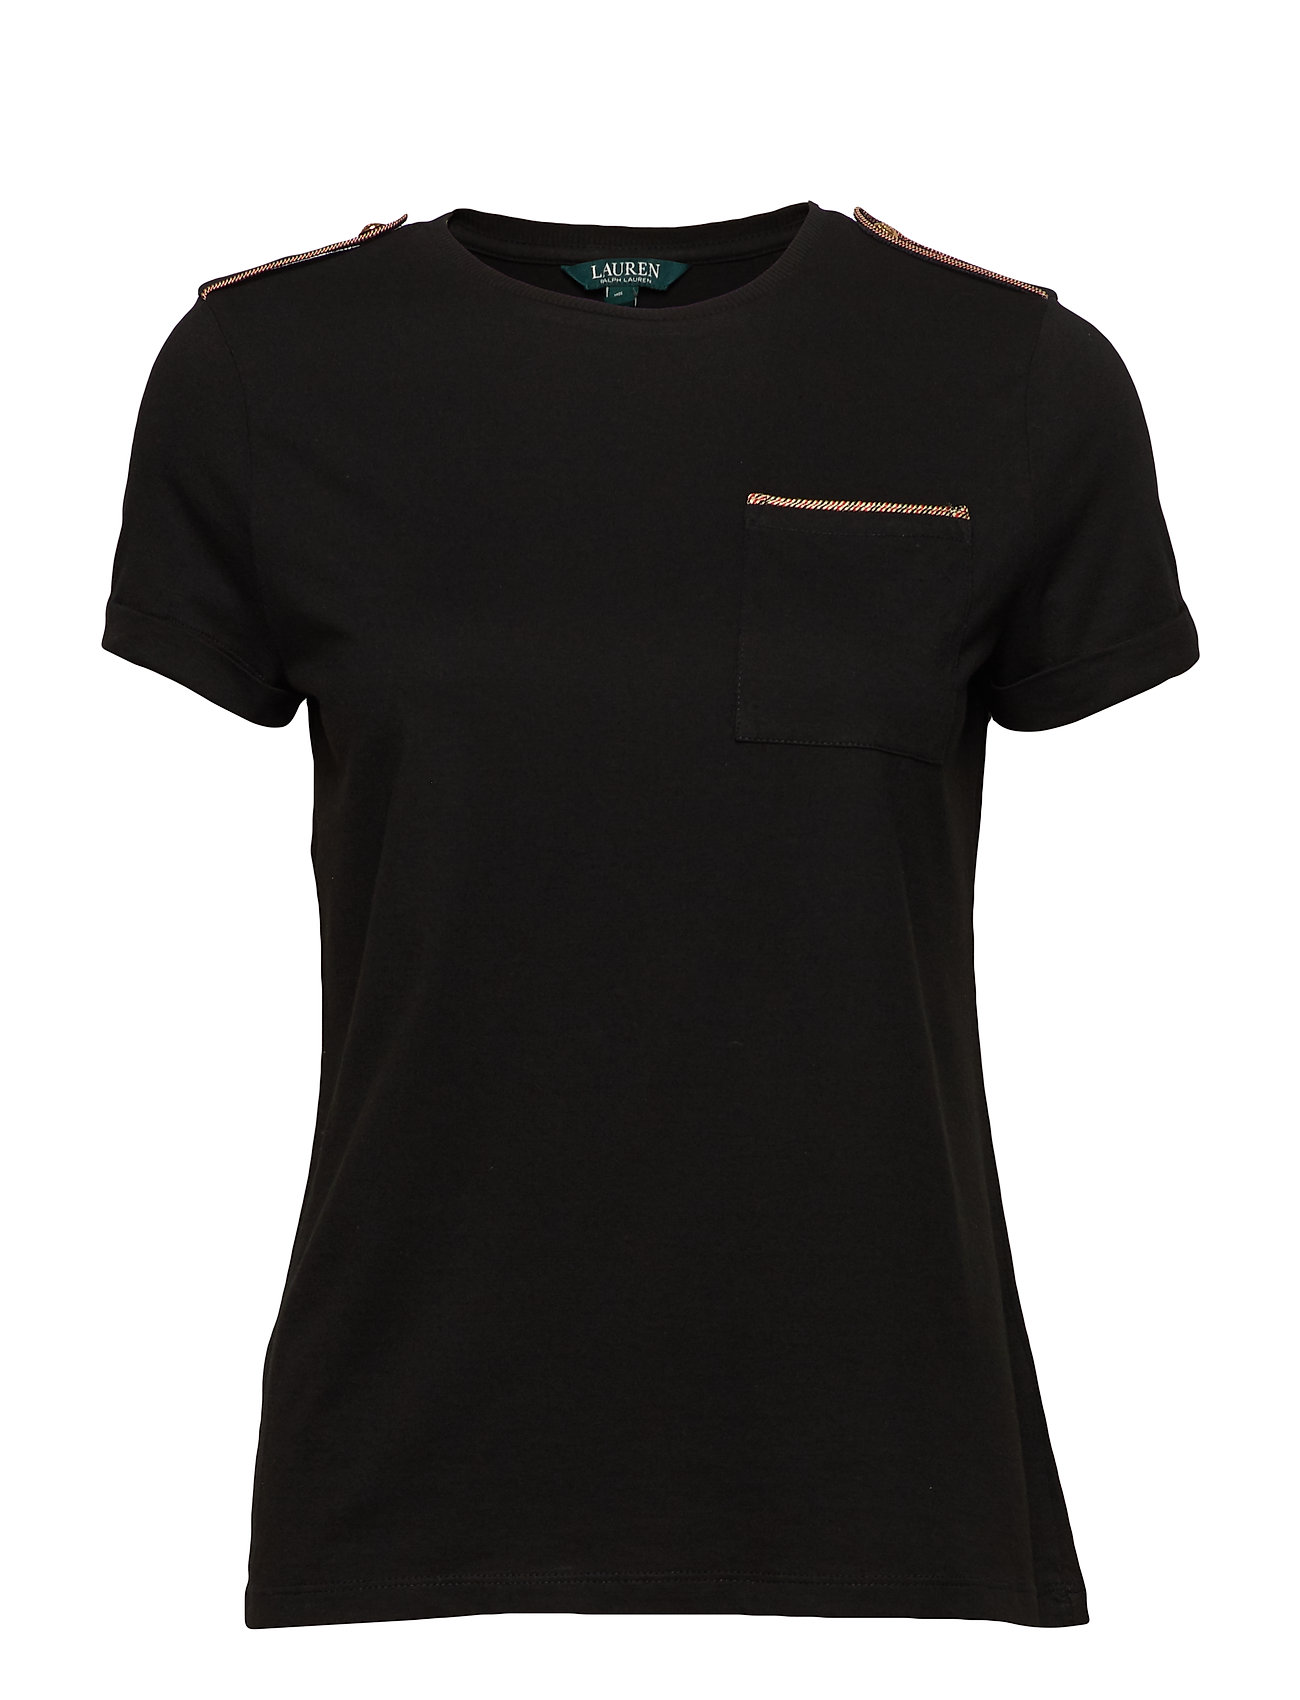 Lauren Ralph Lauren Cotton-Blend Pocket Tee - POLO BLACK